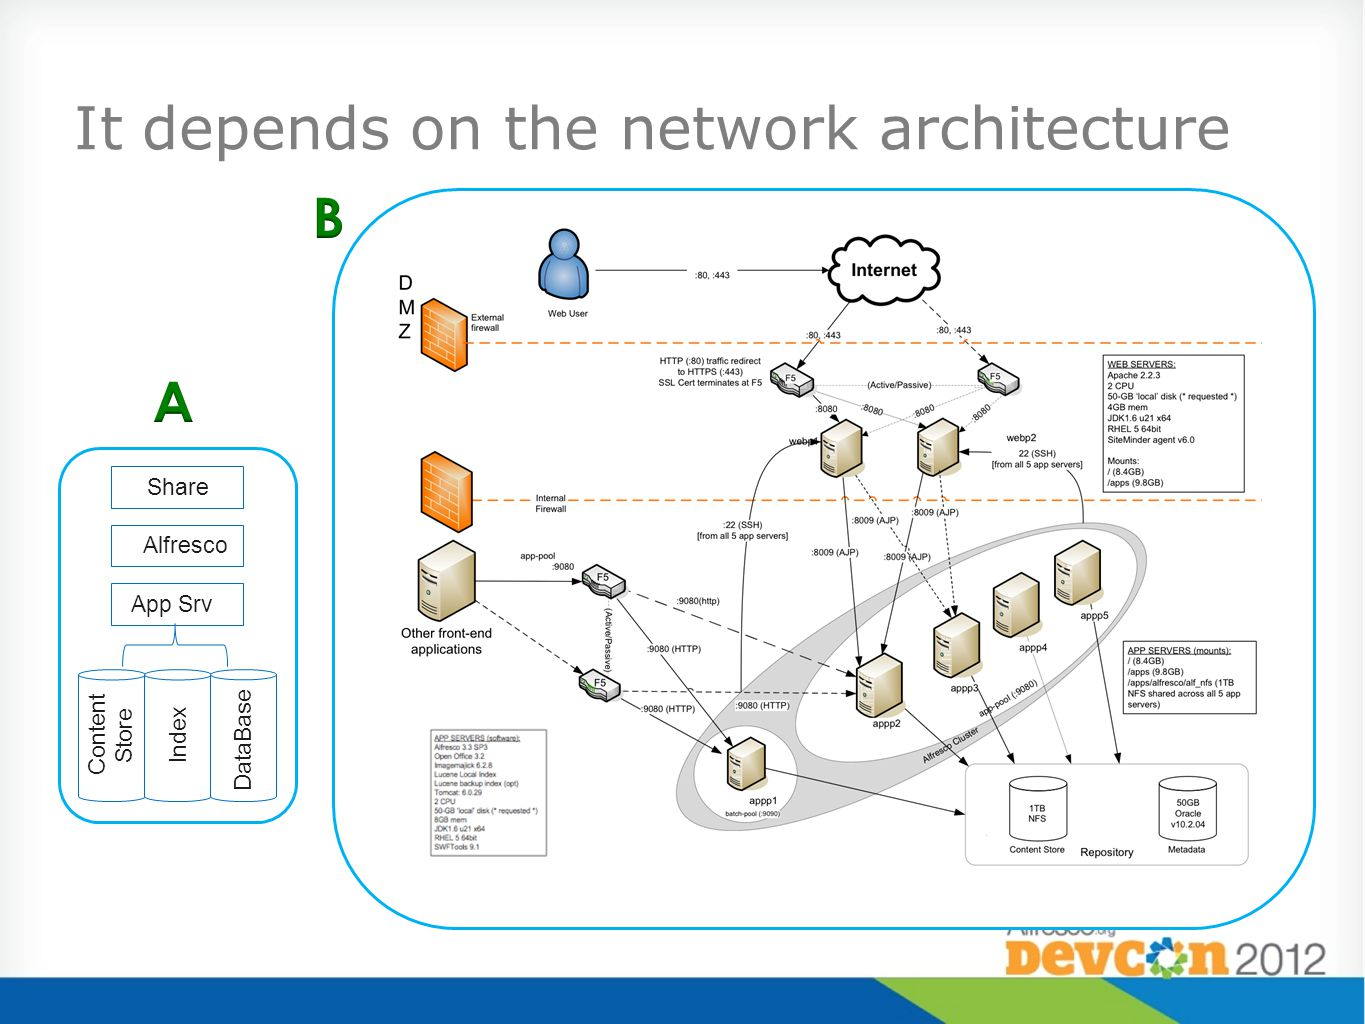 It depends on the network architecture